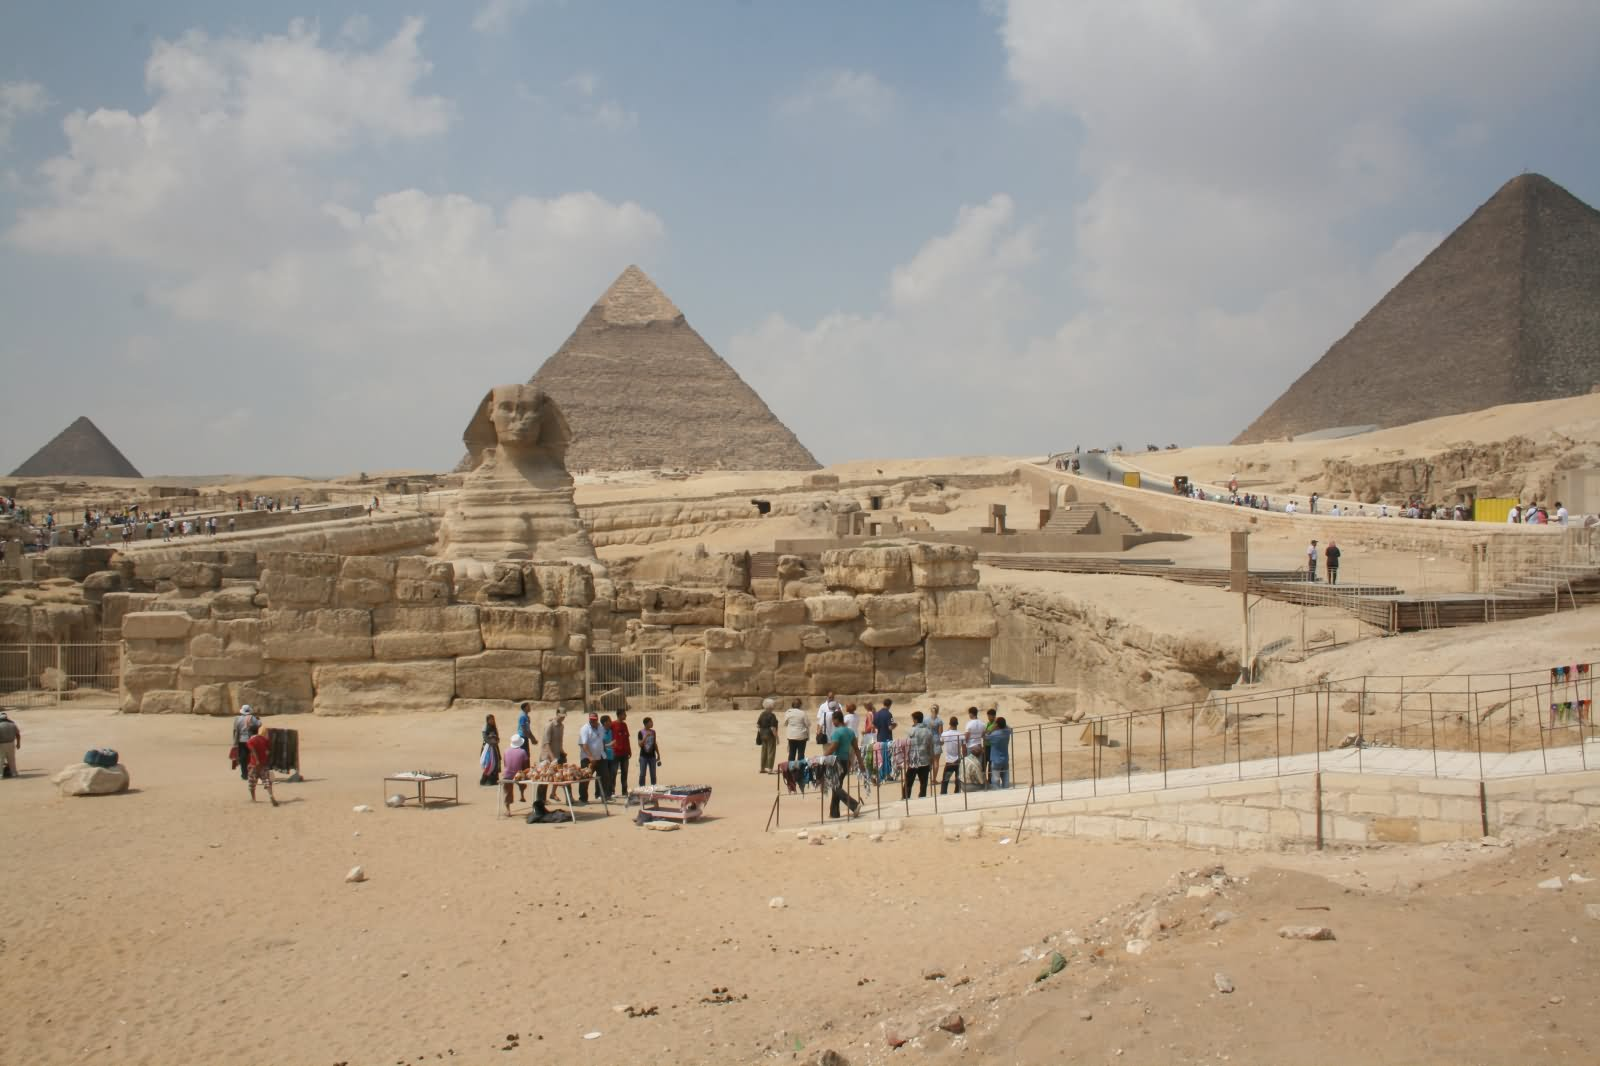 The Great Sphinx of Giza And Pyramids In Background